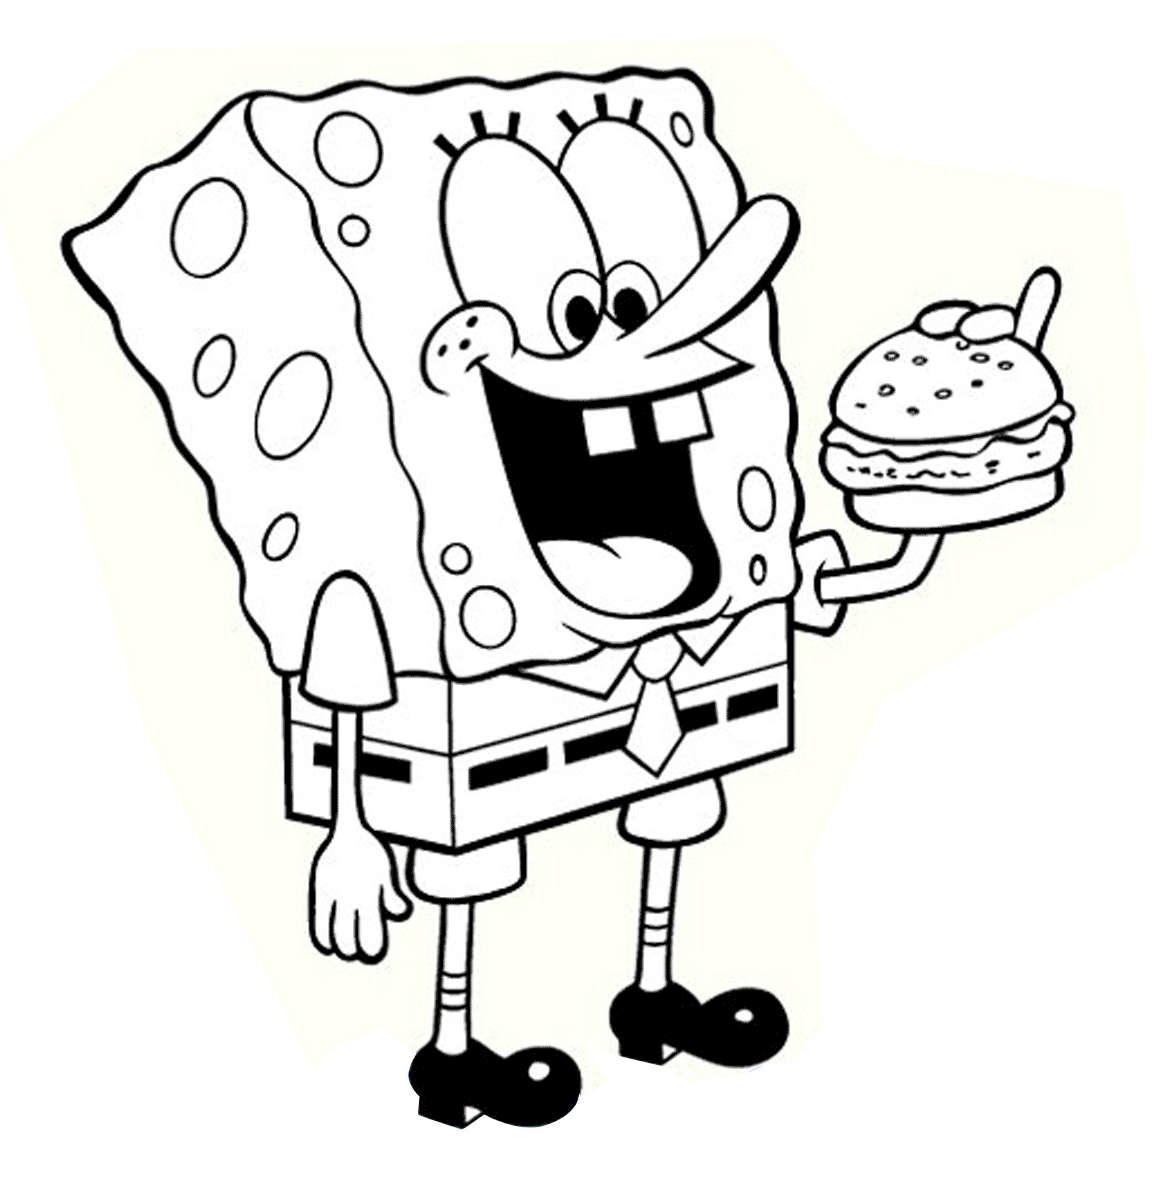 picture relating to Spongebob Printable identify Spongebob-coloring-internet pages-printable - Pleasurable Chap